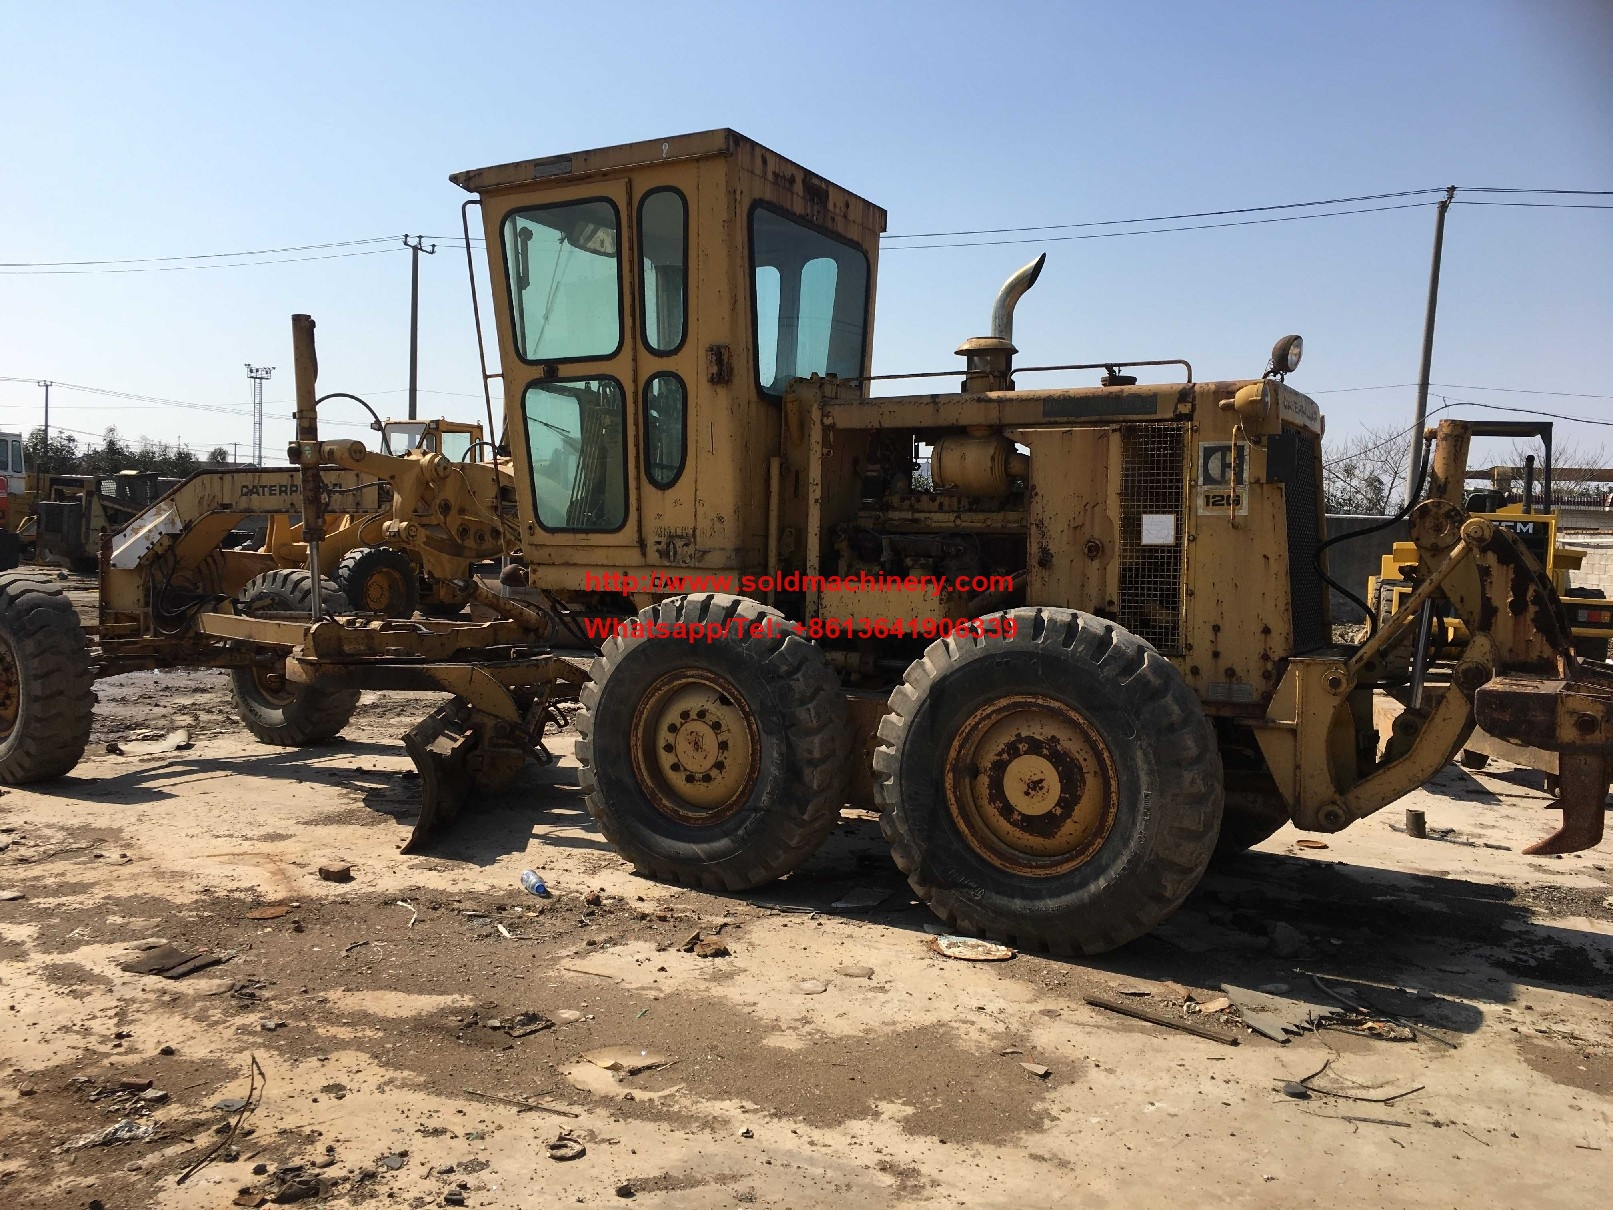 Used Used Motor Grader For Sale For Sale Caterpillar Cat